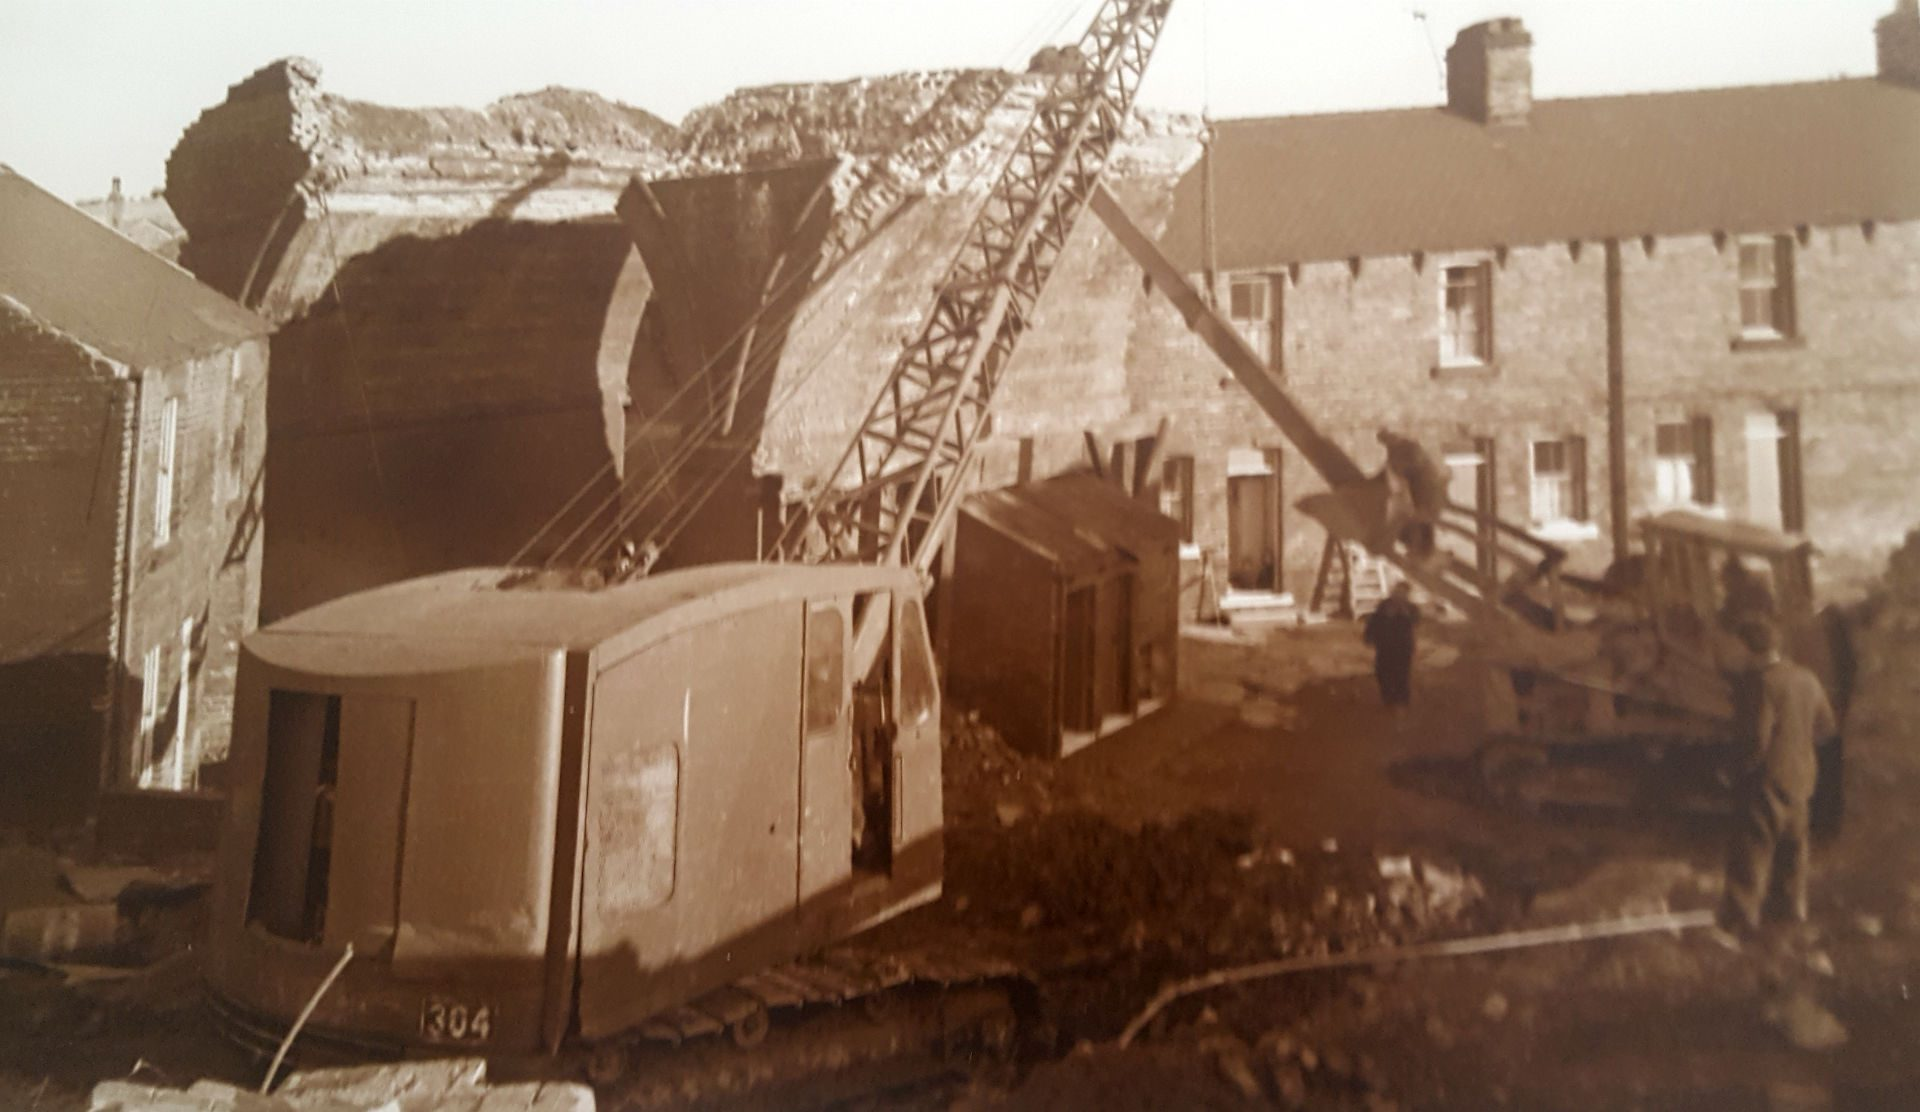 Demolition of Stairfoot Viaduct 2